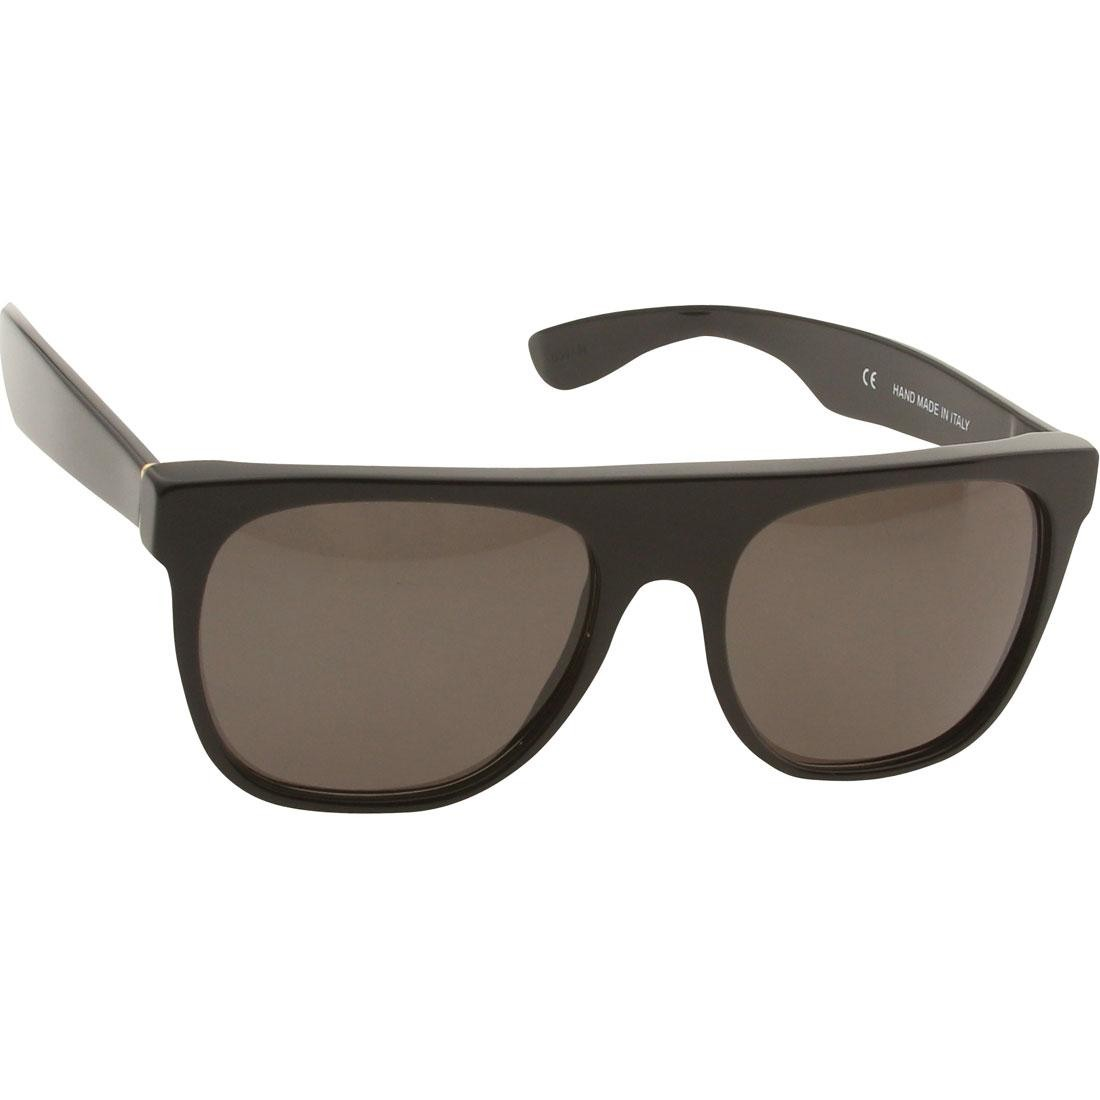 Super Sunglasses Flat Top (black)